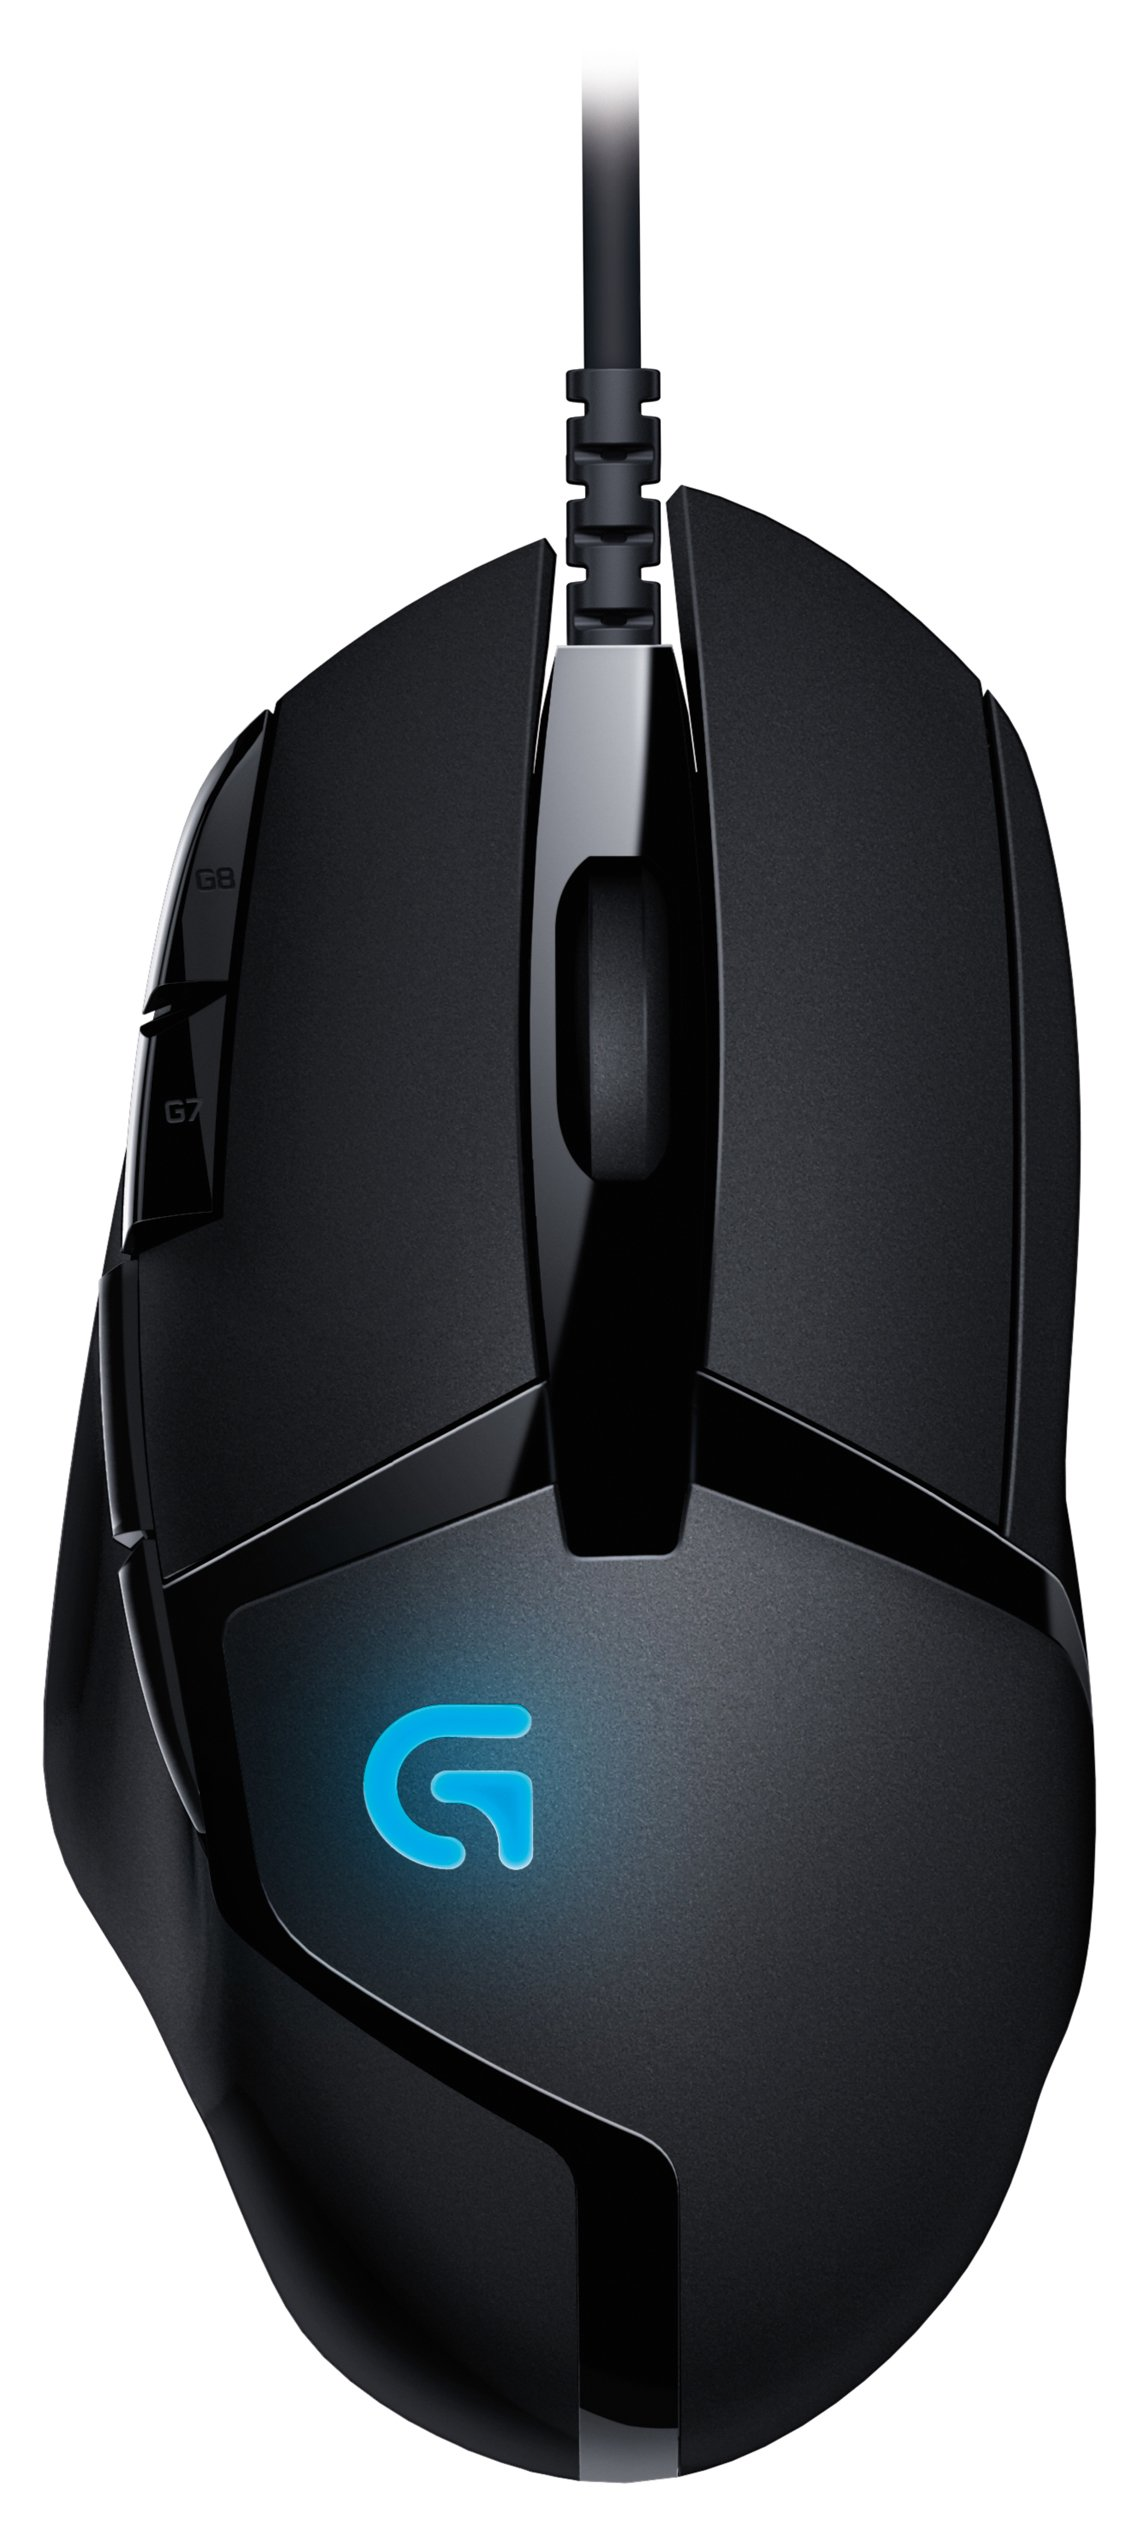 로지텍 G402 게이밍 마우스 Logitech G402 Hyperion Fury FPS Gaming Mouse